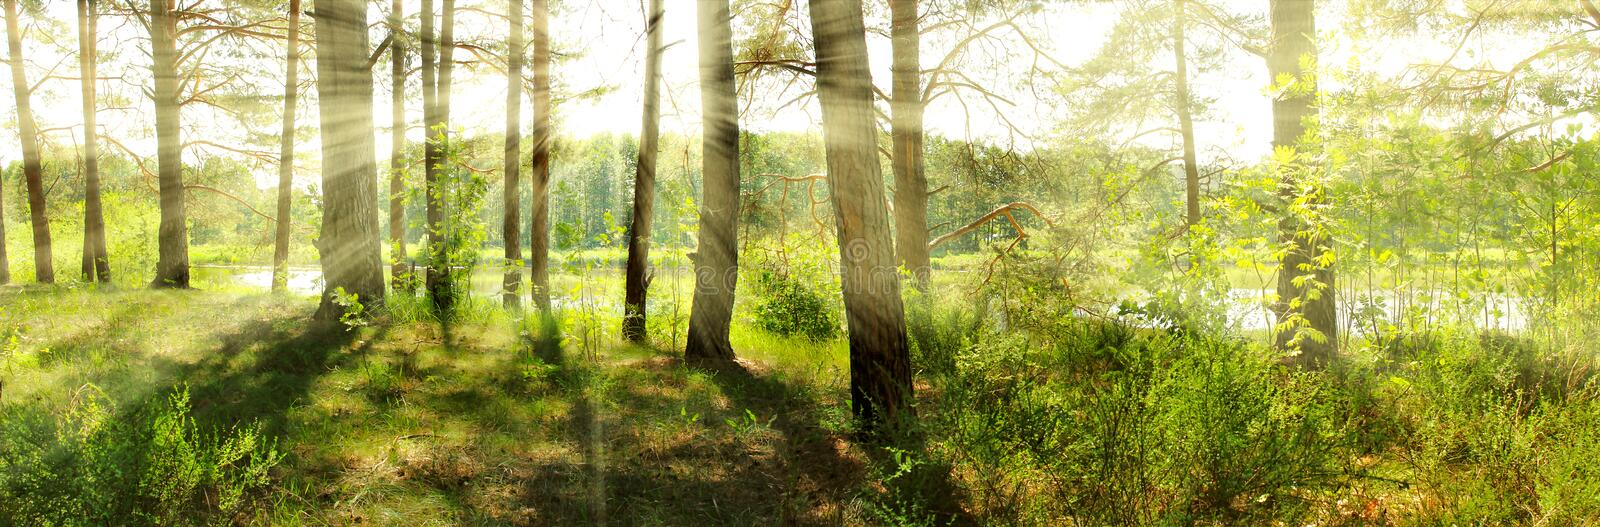 Summer. Sun in pine forest stock photo